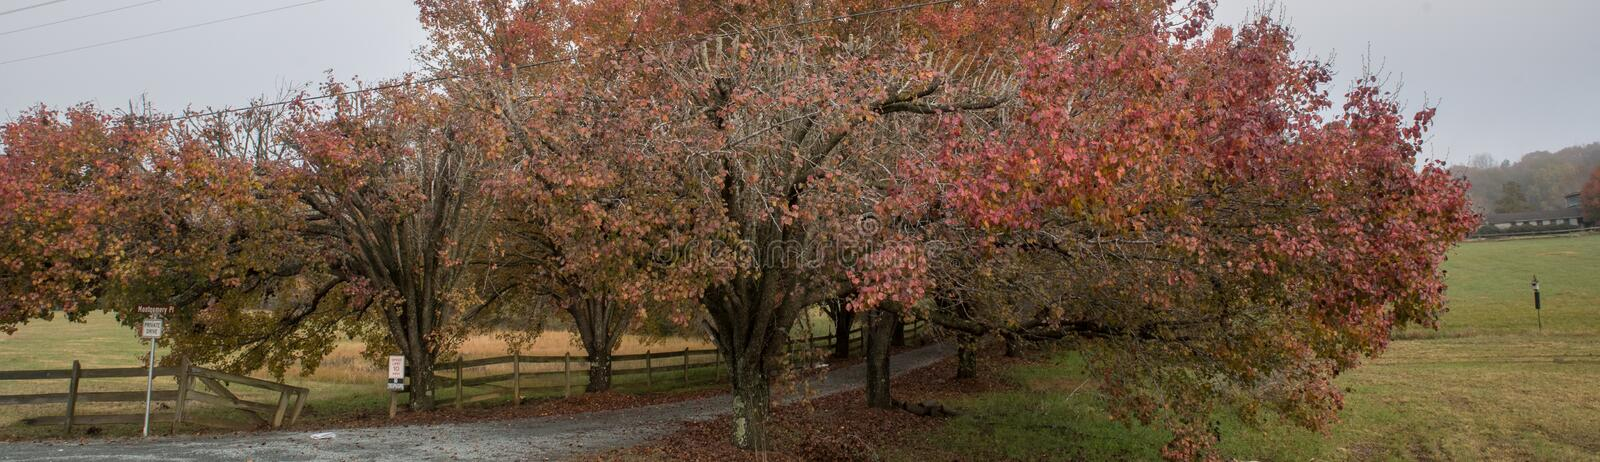 Colorful trees lining coutry lane. Colorful trees and wooden fence lining coutry lane royalty free stock images